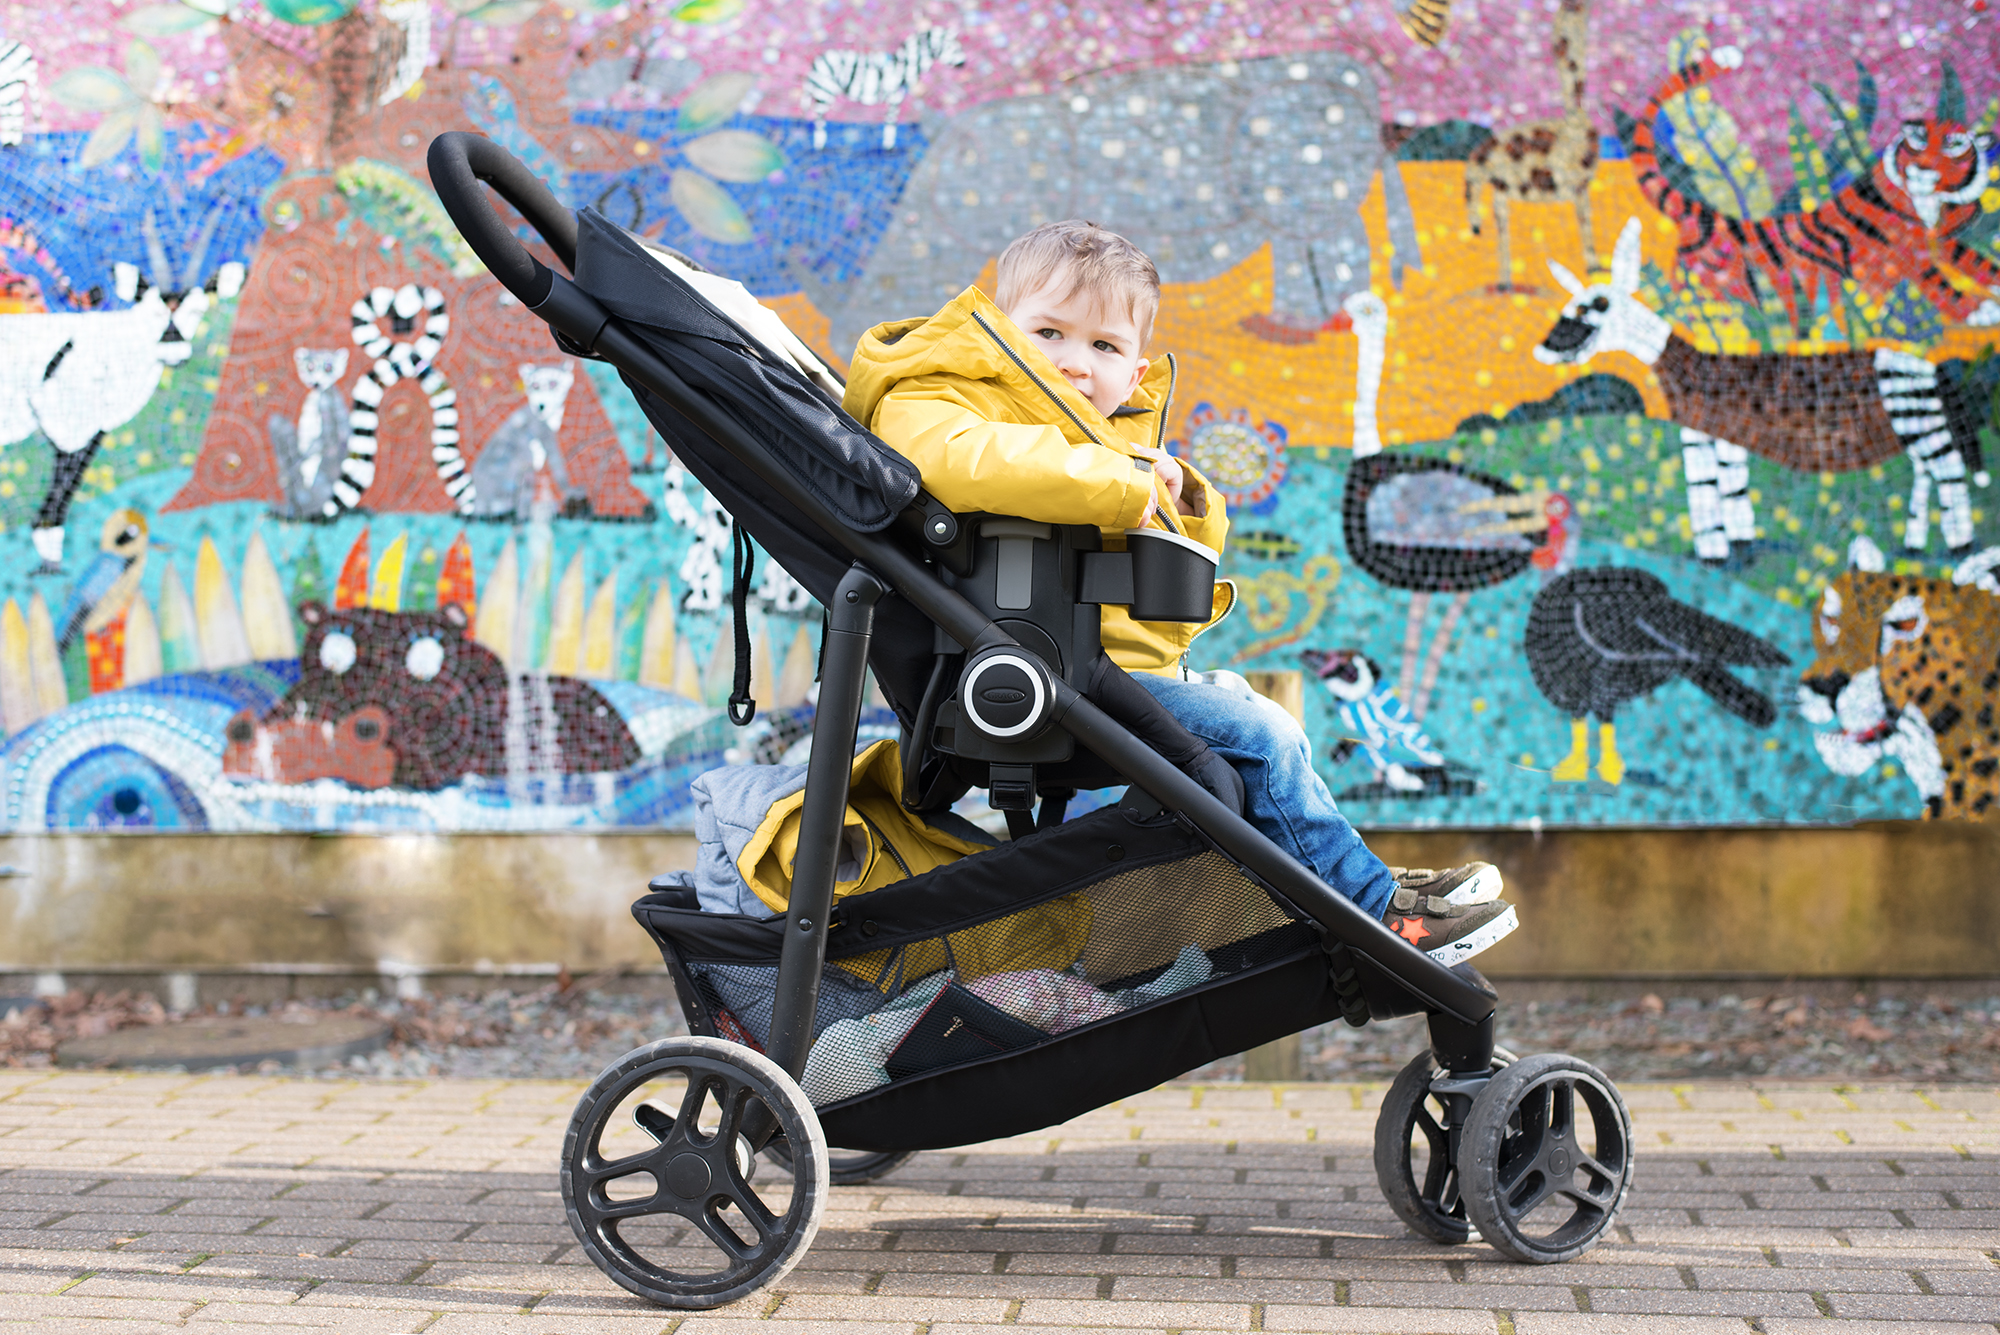 GRACO 3 MODES LITE STROLLER REVIEW